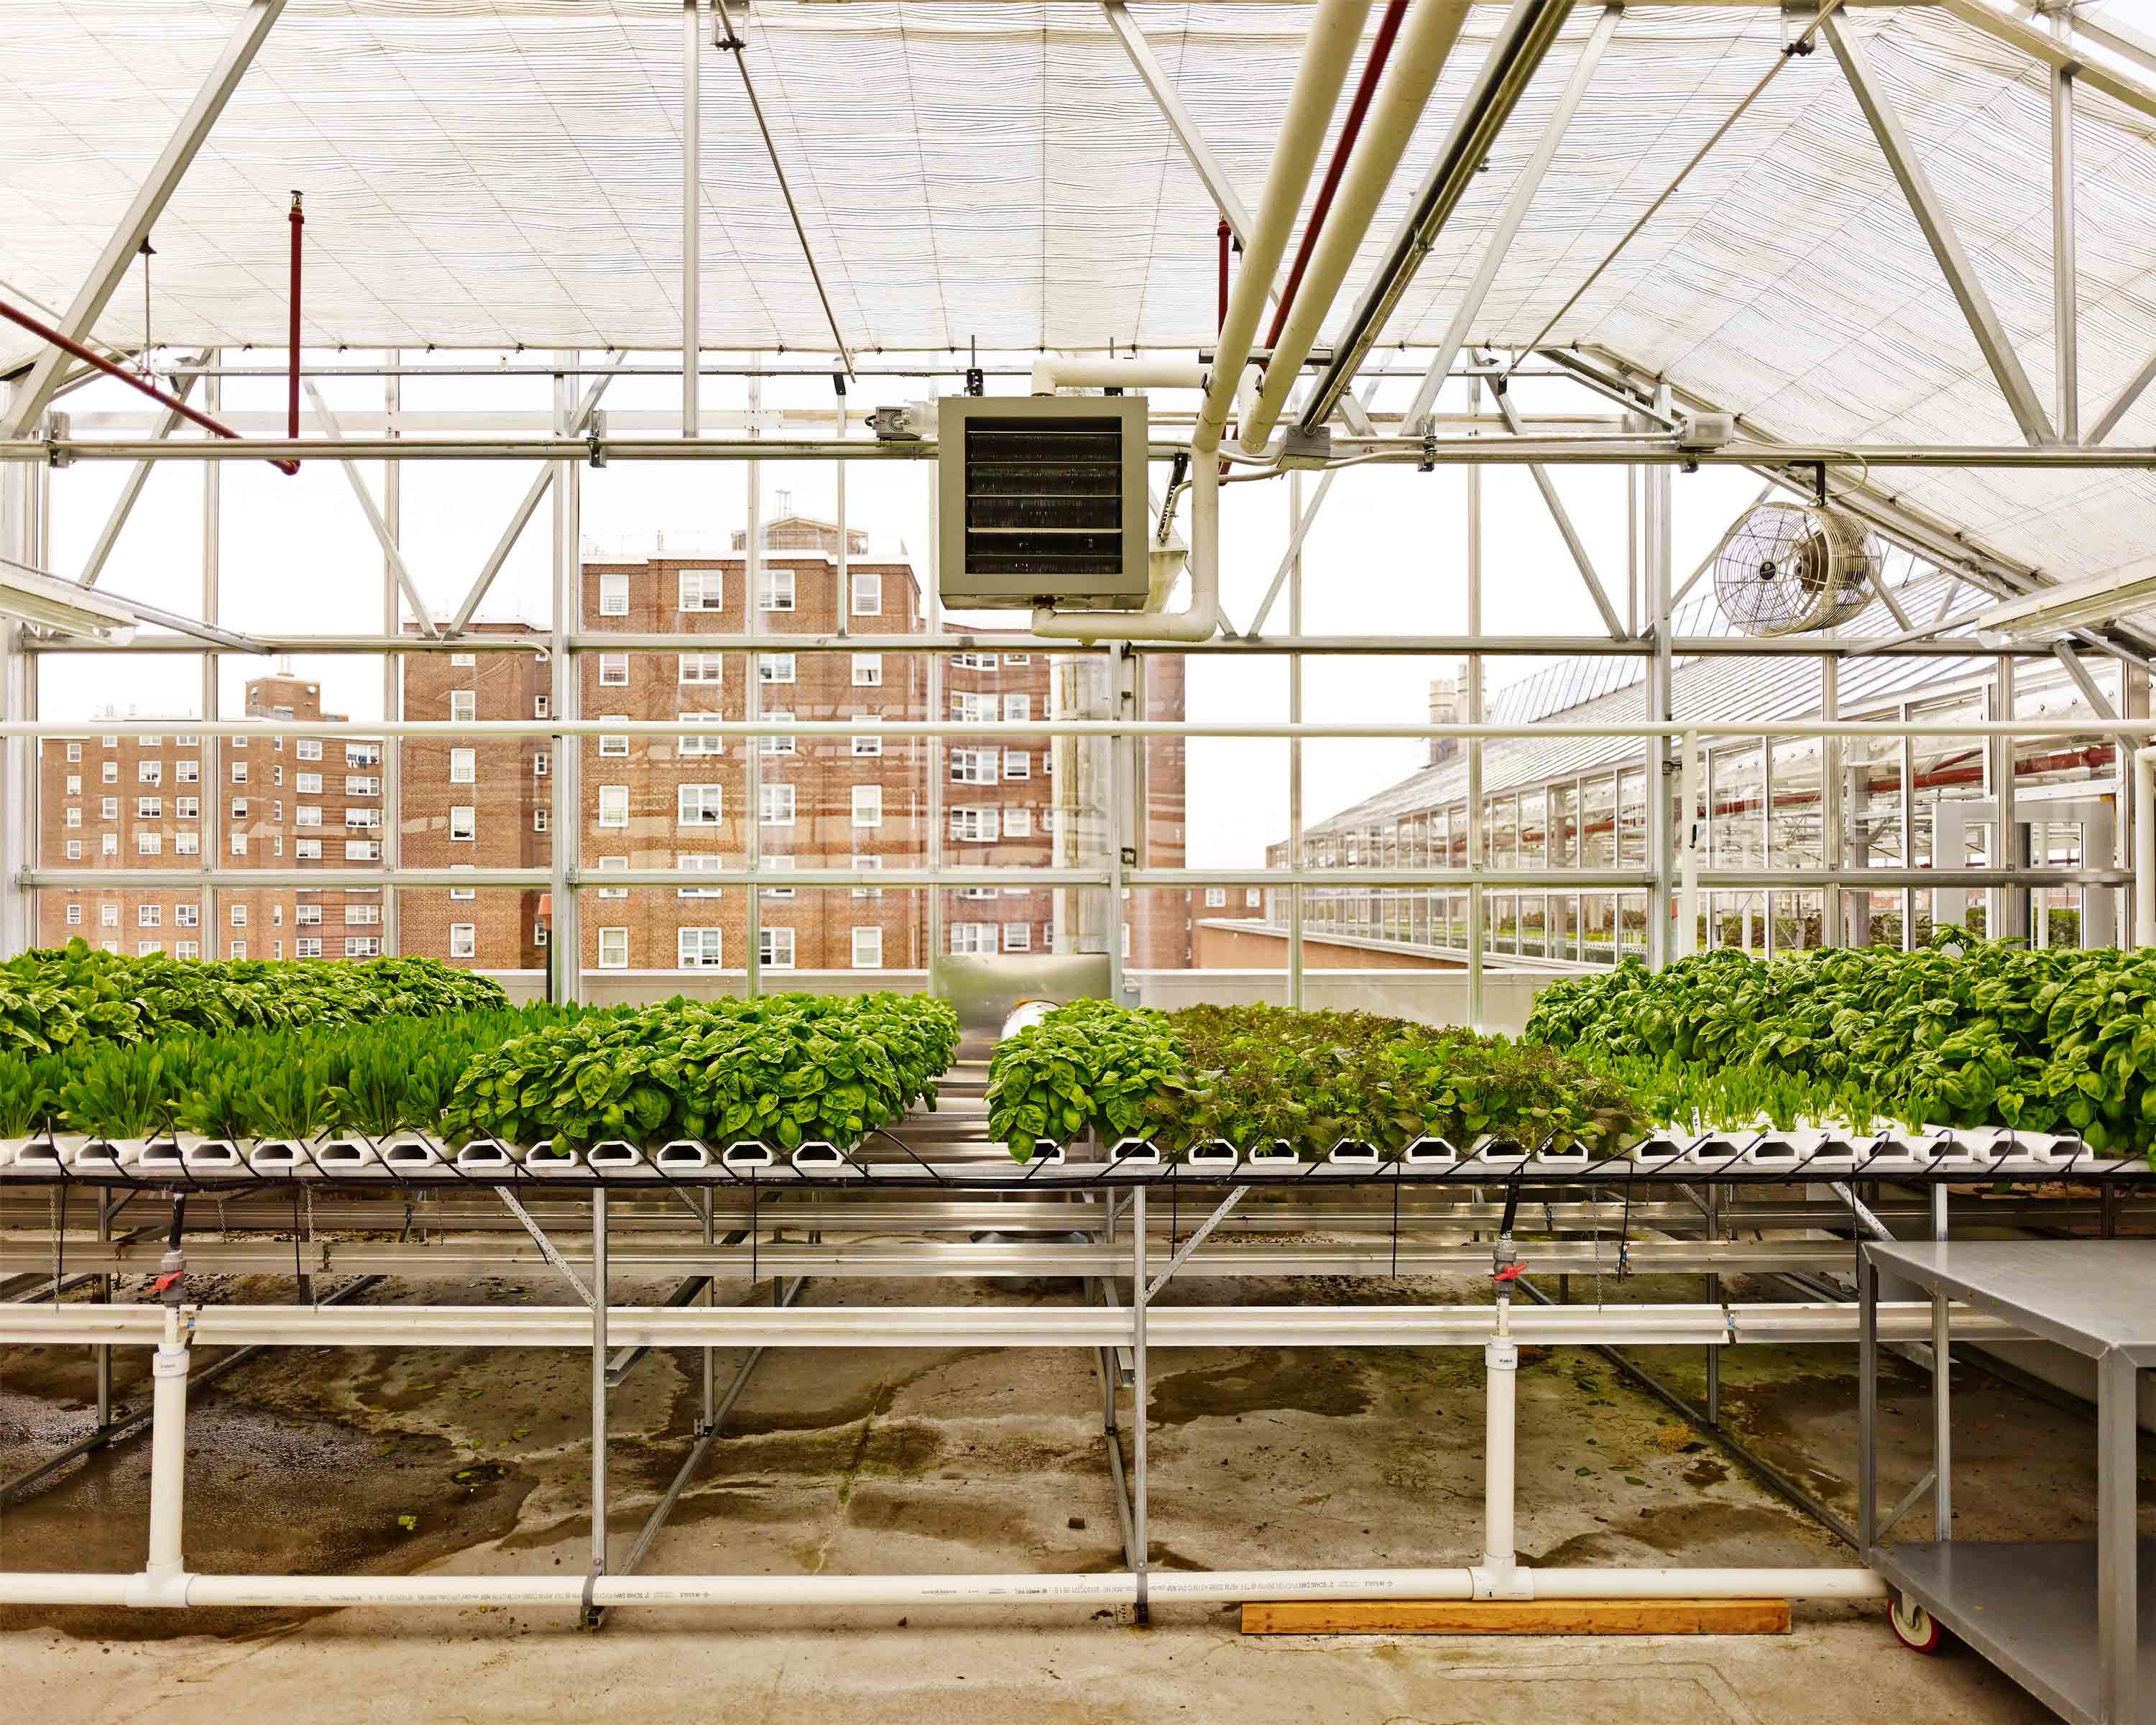 To help improve eating habits, Arbor House offers its roof rent-free to Sky Vegetables, an urban-agriculture company that sells or donates 40% of its produce to nearby shops and farmers' markets.